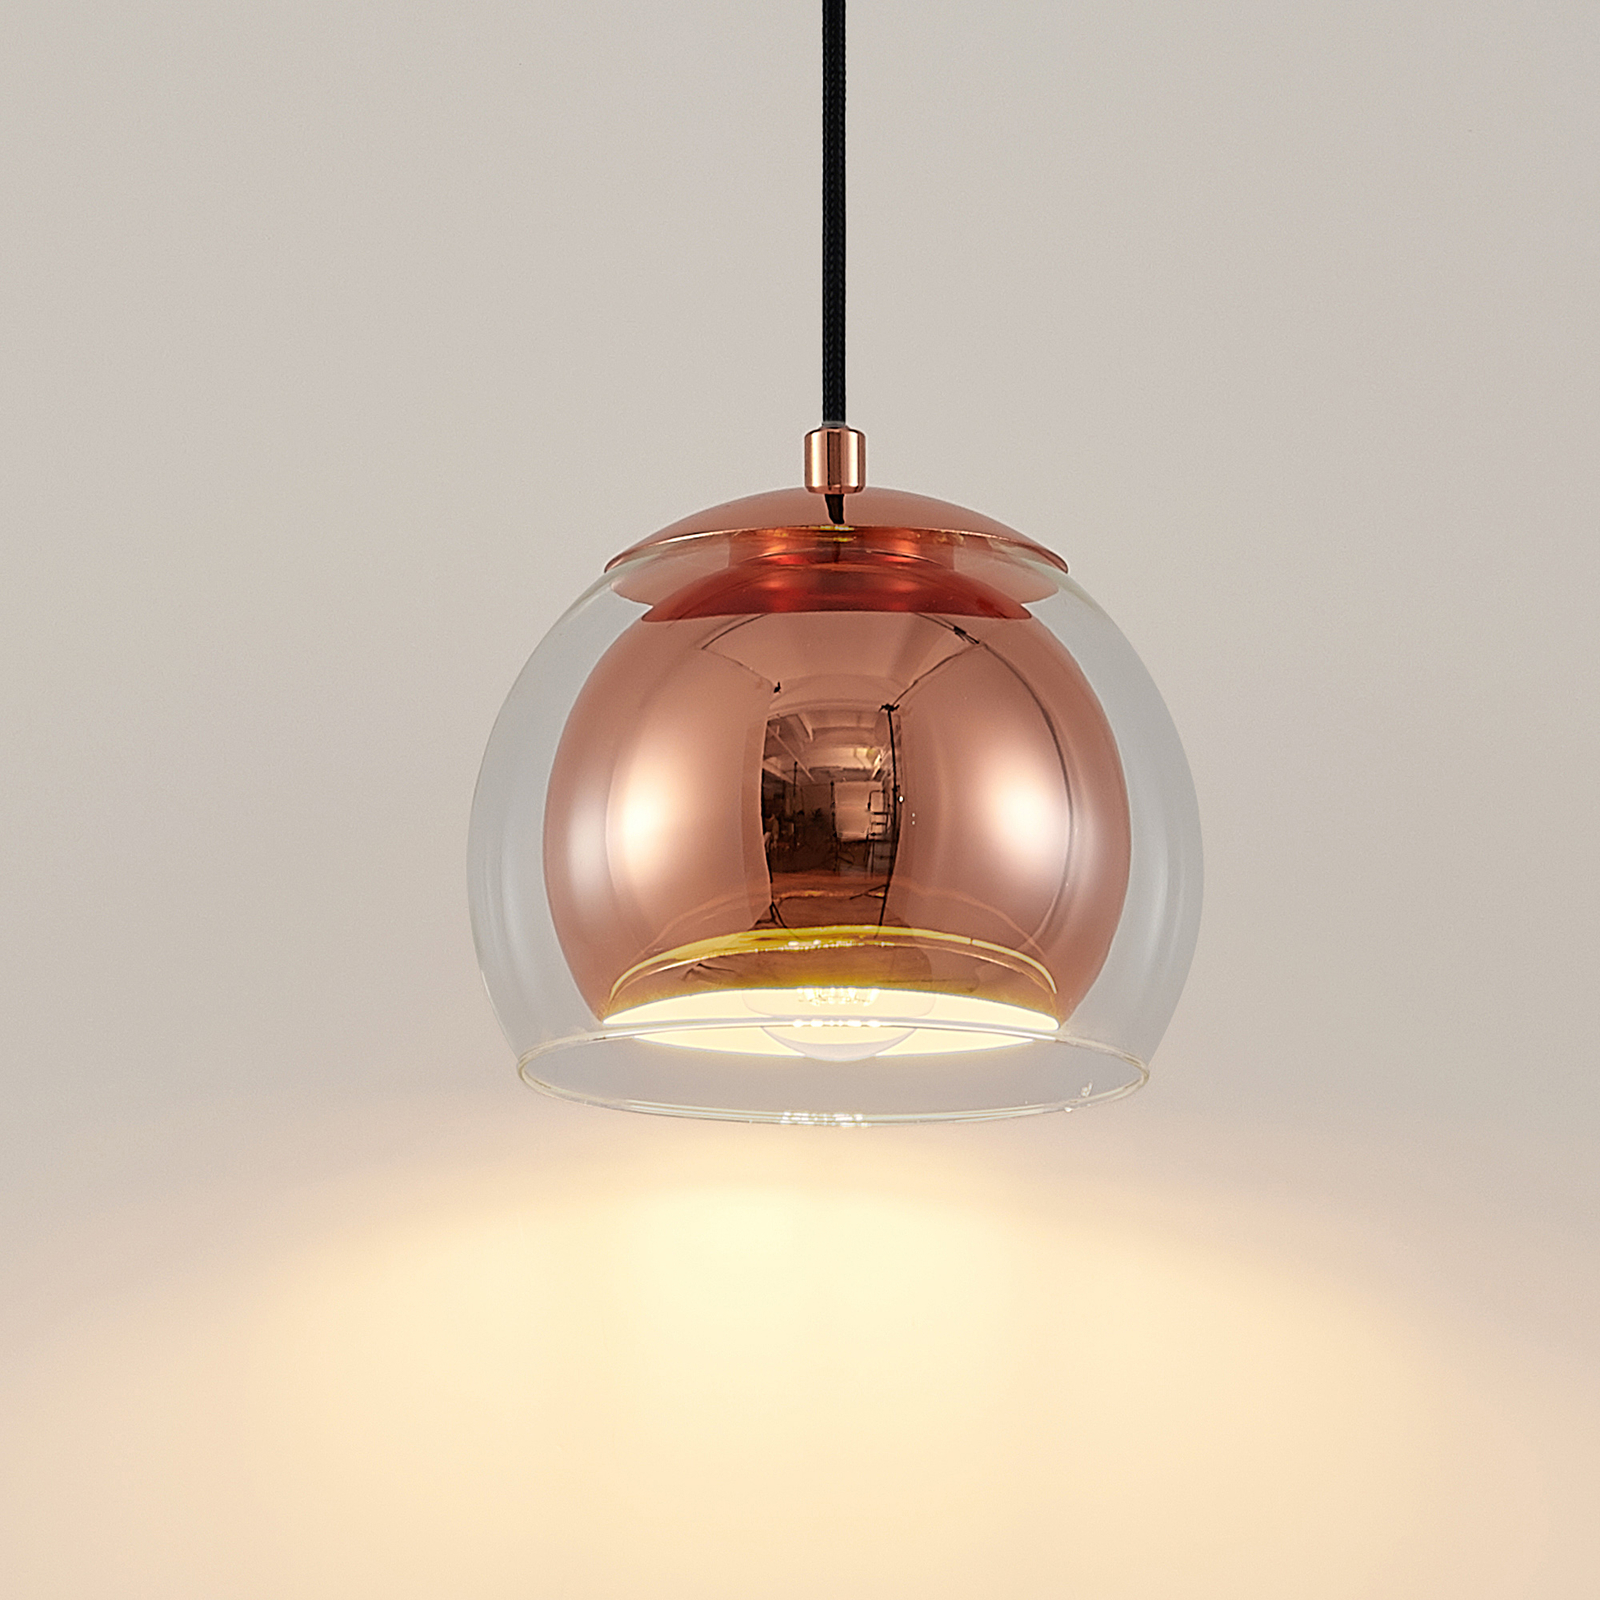 Lindby Daymien sospensione, 1 luce, rame